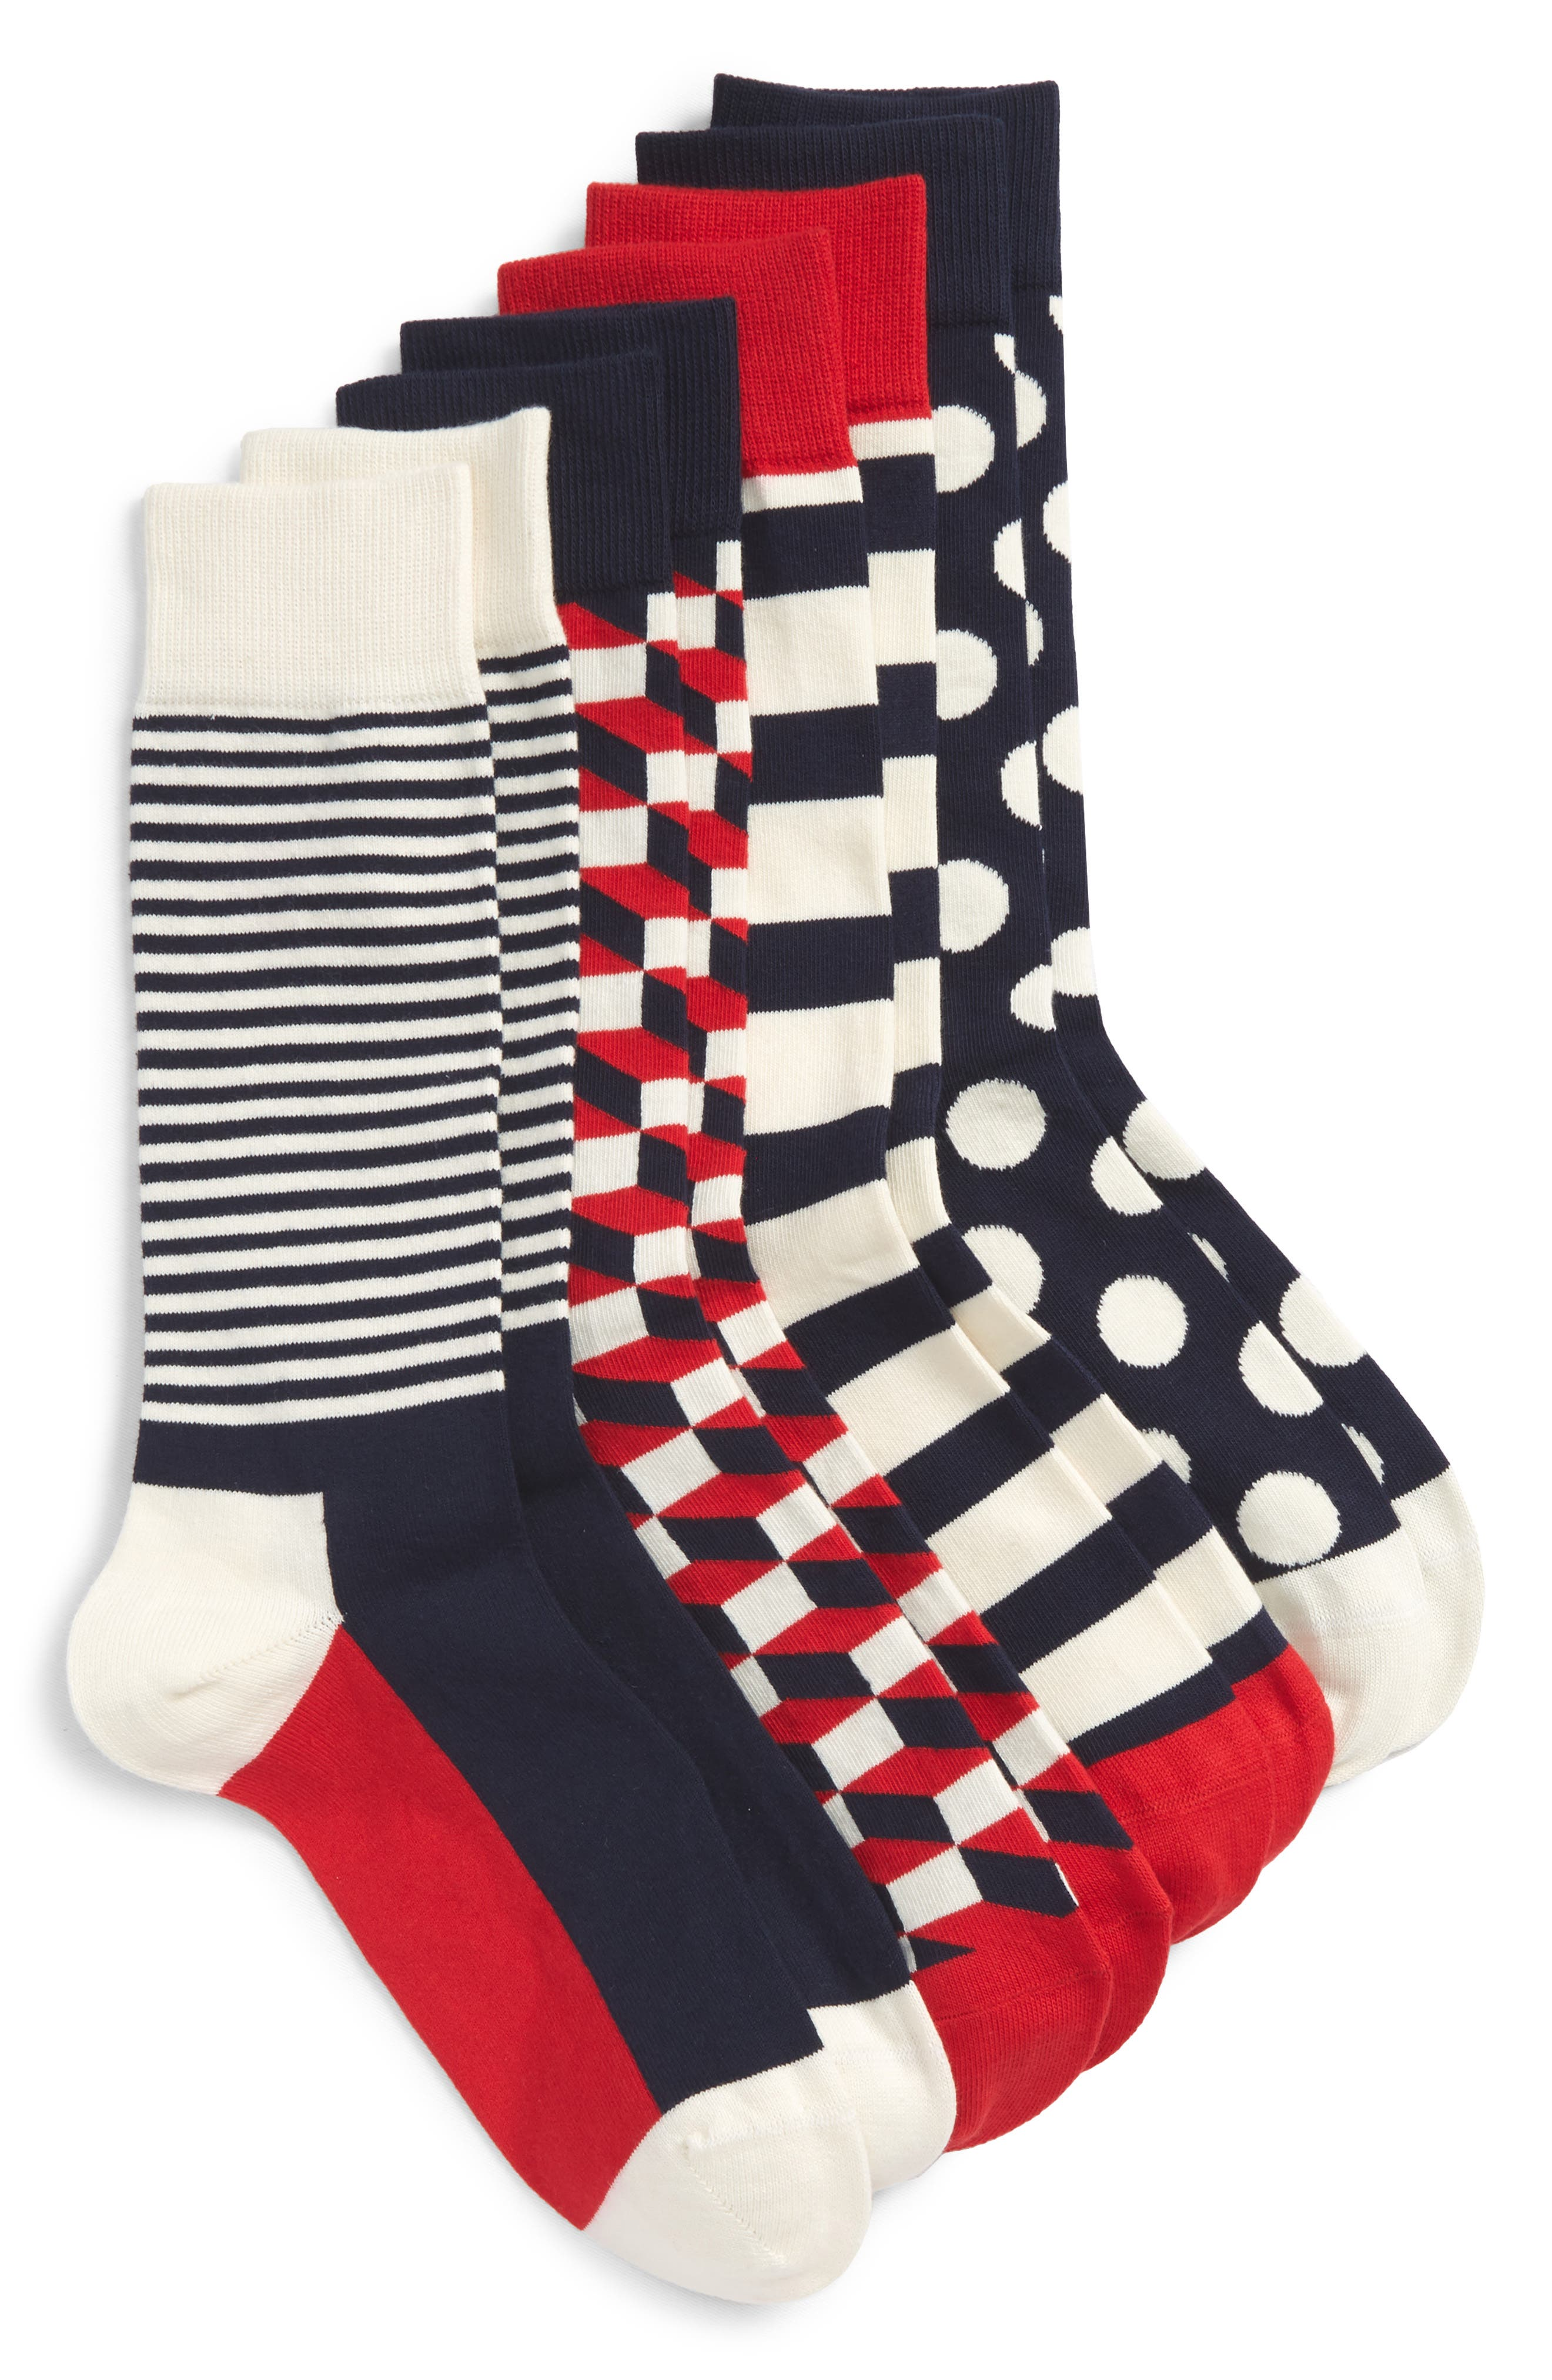 4-Pack Sock Gift Set,                         Main,                         color, Navy/ Red/ White